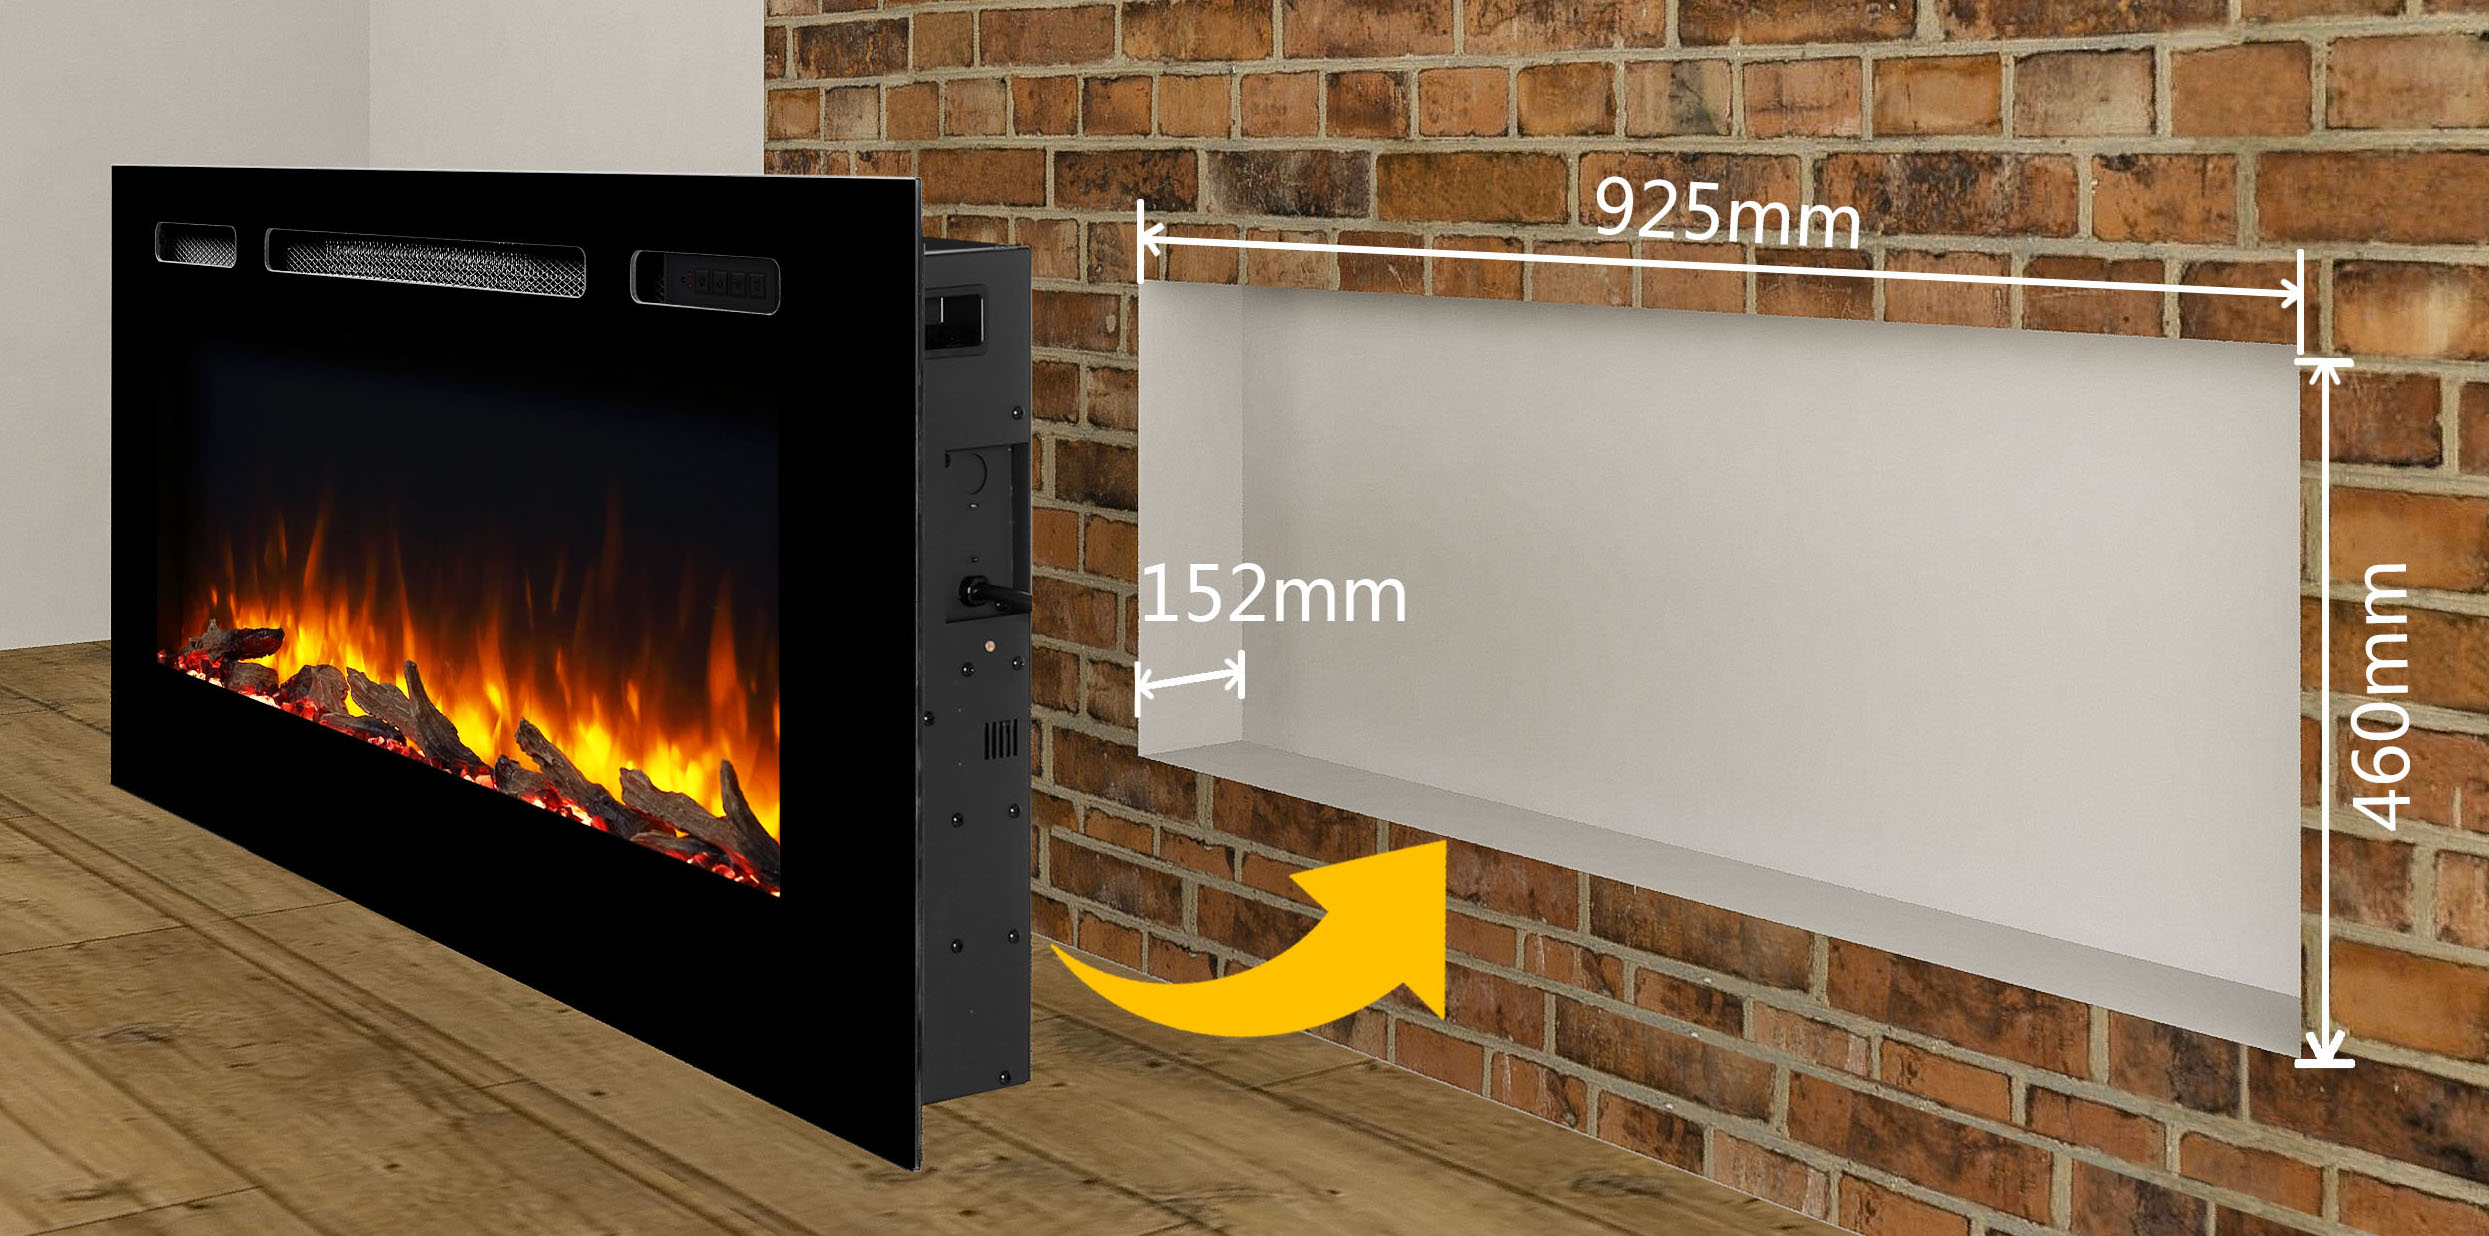 Hawnby Recessed Electric Fire Endeavour Fires And Fireplaces